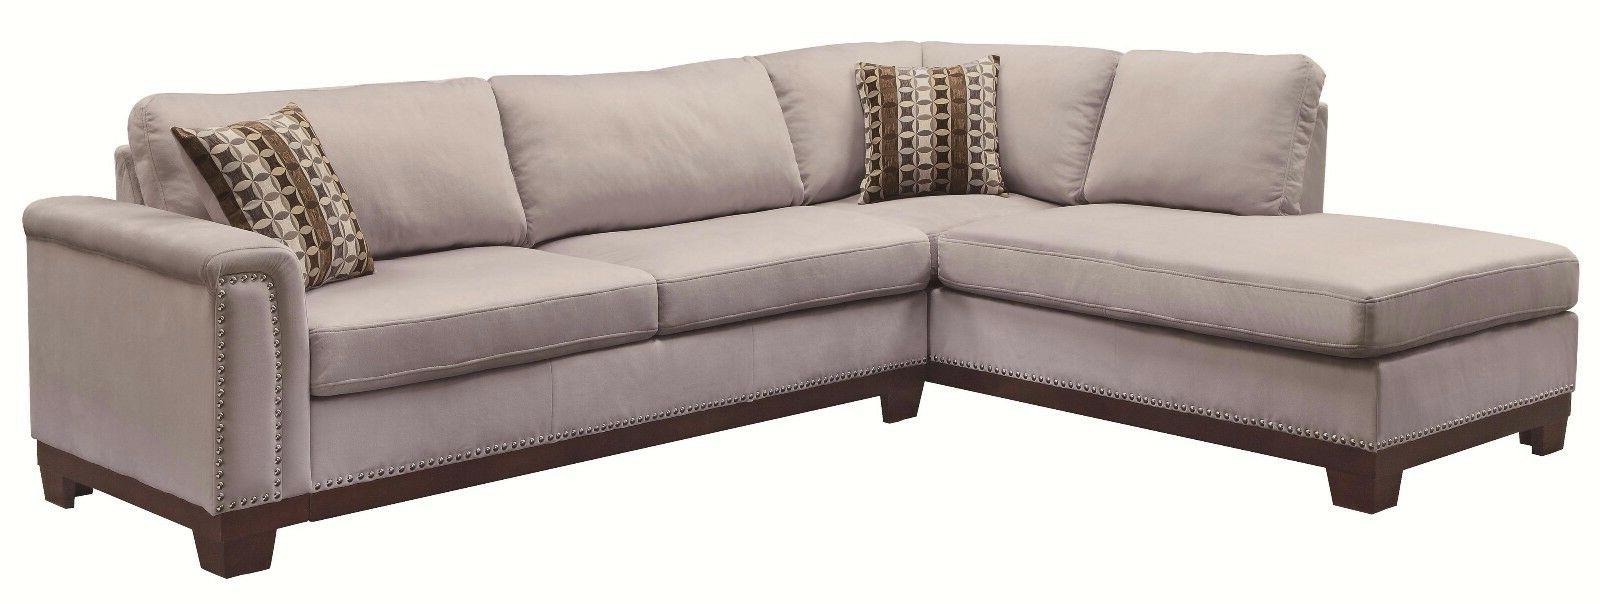 Transitional Sectional Set Blue Color Fabric Living Room Couch